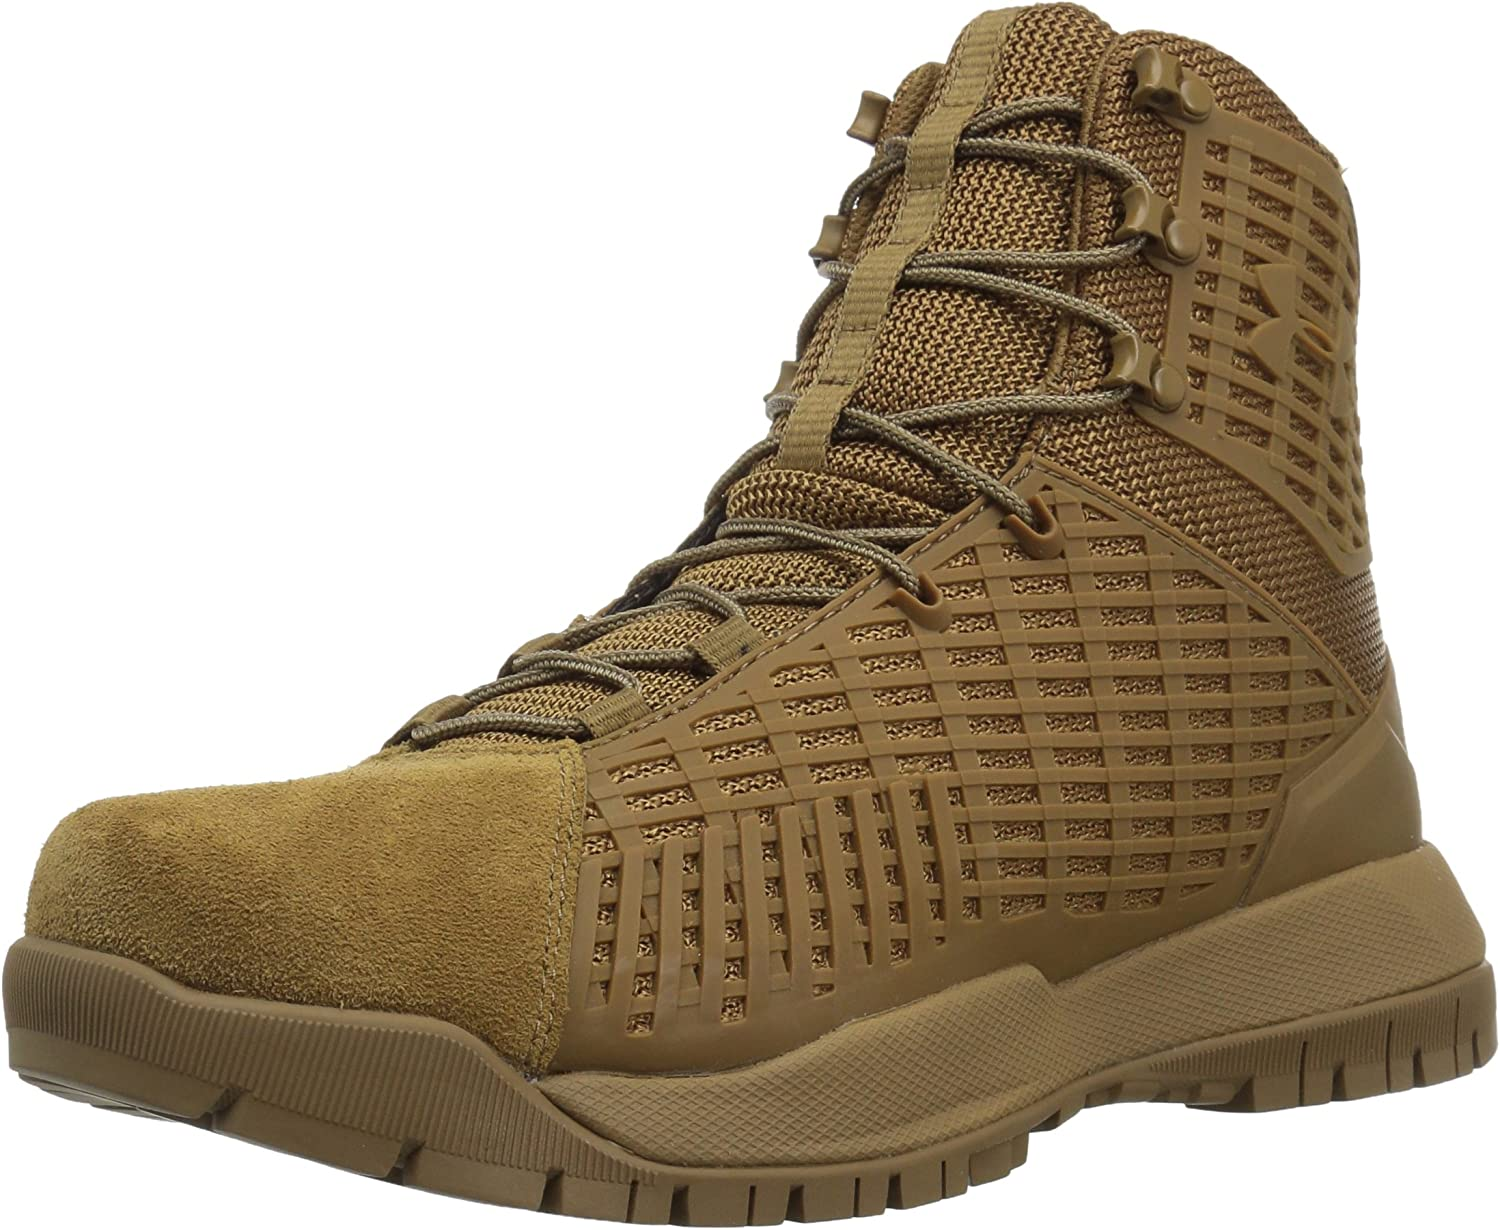 Under Armour Women's Stryker Military